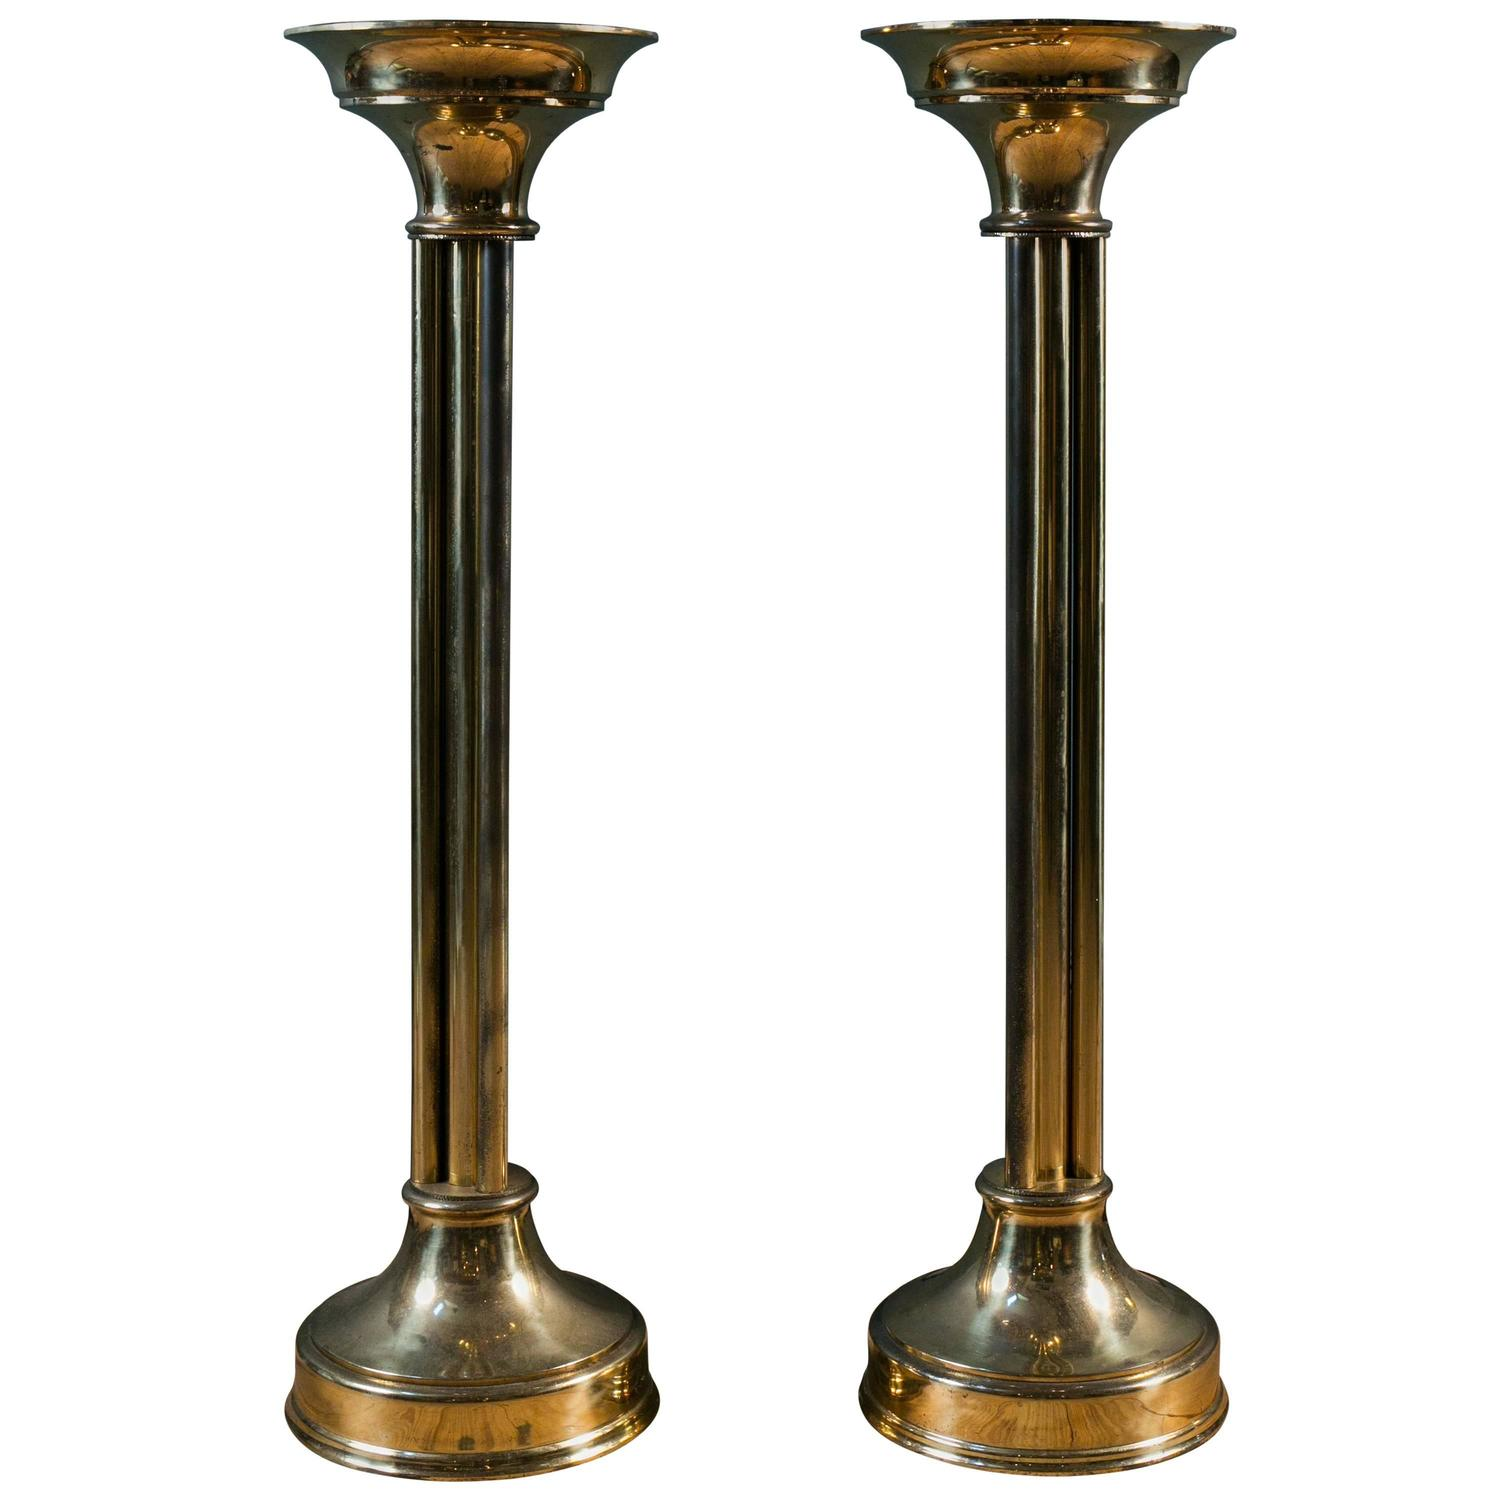 Eva zeisel furniture tables collectibles more 6 for sale at pair of tall mid century modern brass pedestals from holland circa 1950 geotapseo Image collections